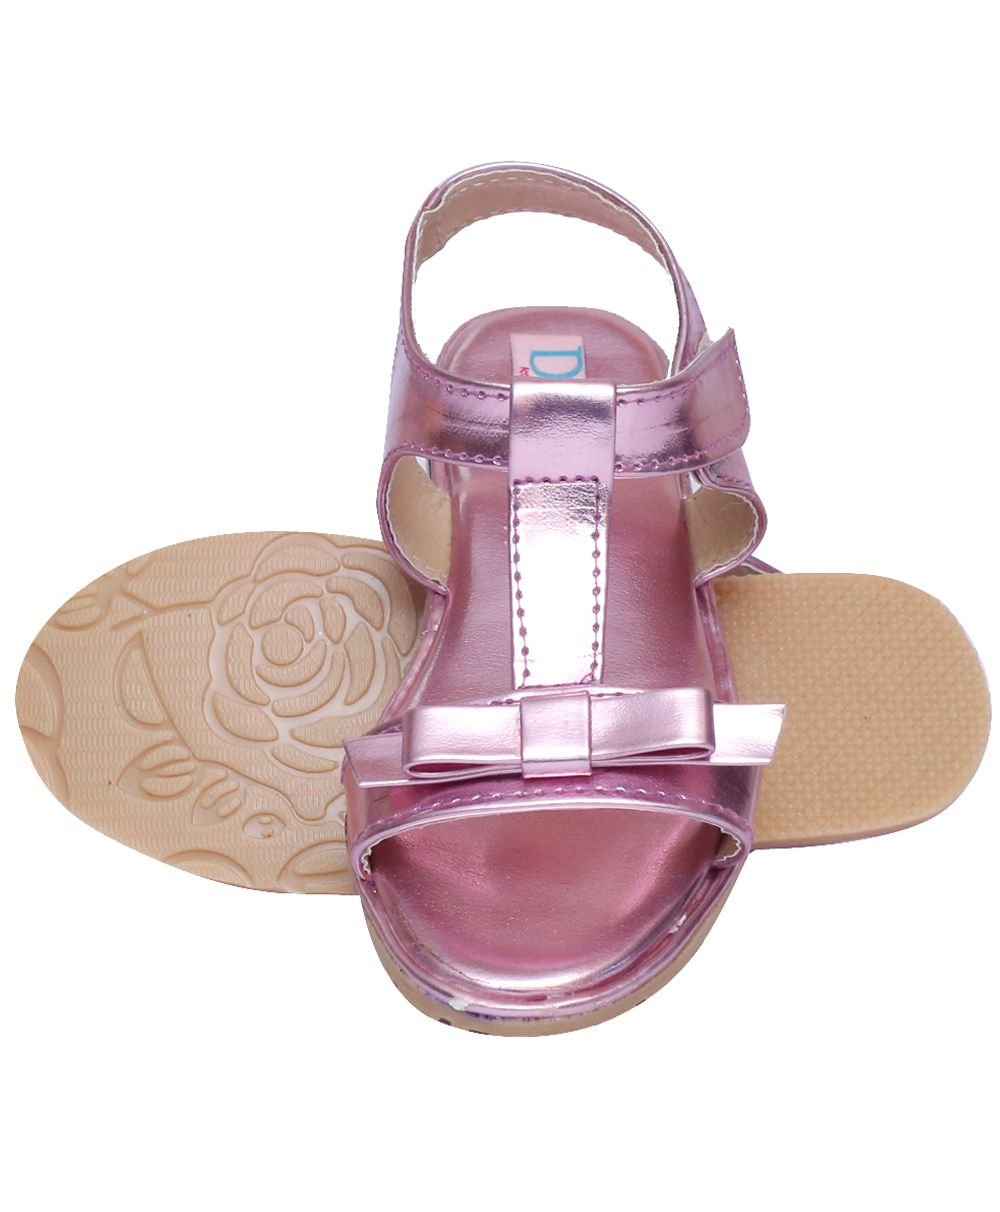 BABY & KIDS SHOES, SANDALS, BOOTIES By Flirstcry | D'chica Chicness In Her Feet Sandals - Pink @ Rs.399